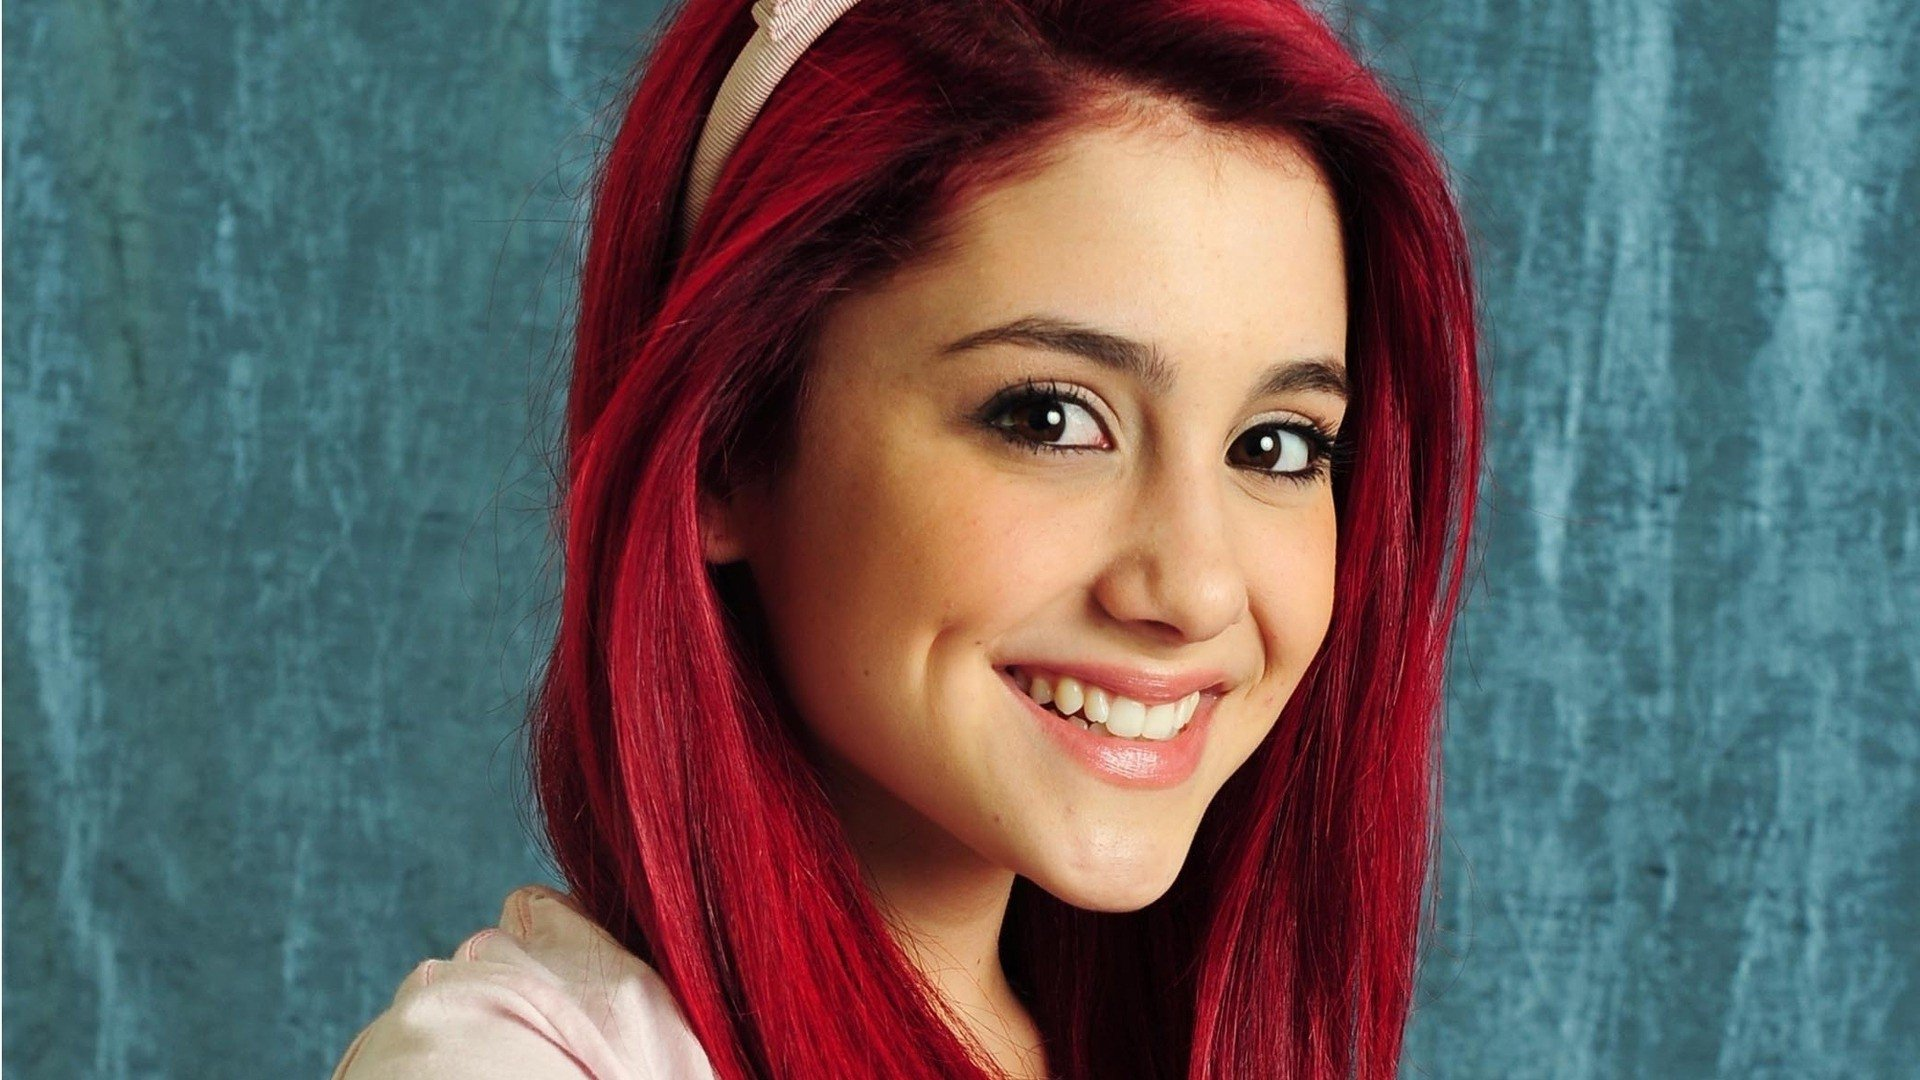 Black Cars Wallpapers For Android Mobile Hd Ariana Grande Smile Hd Celebrities 4k Wallpapers Images